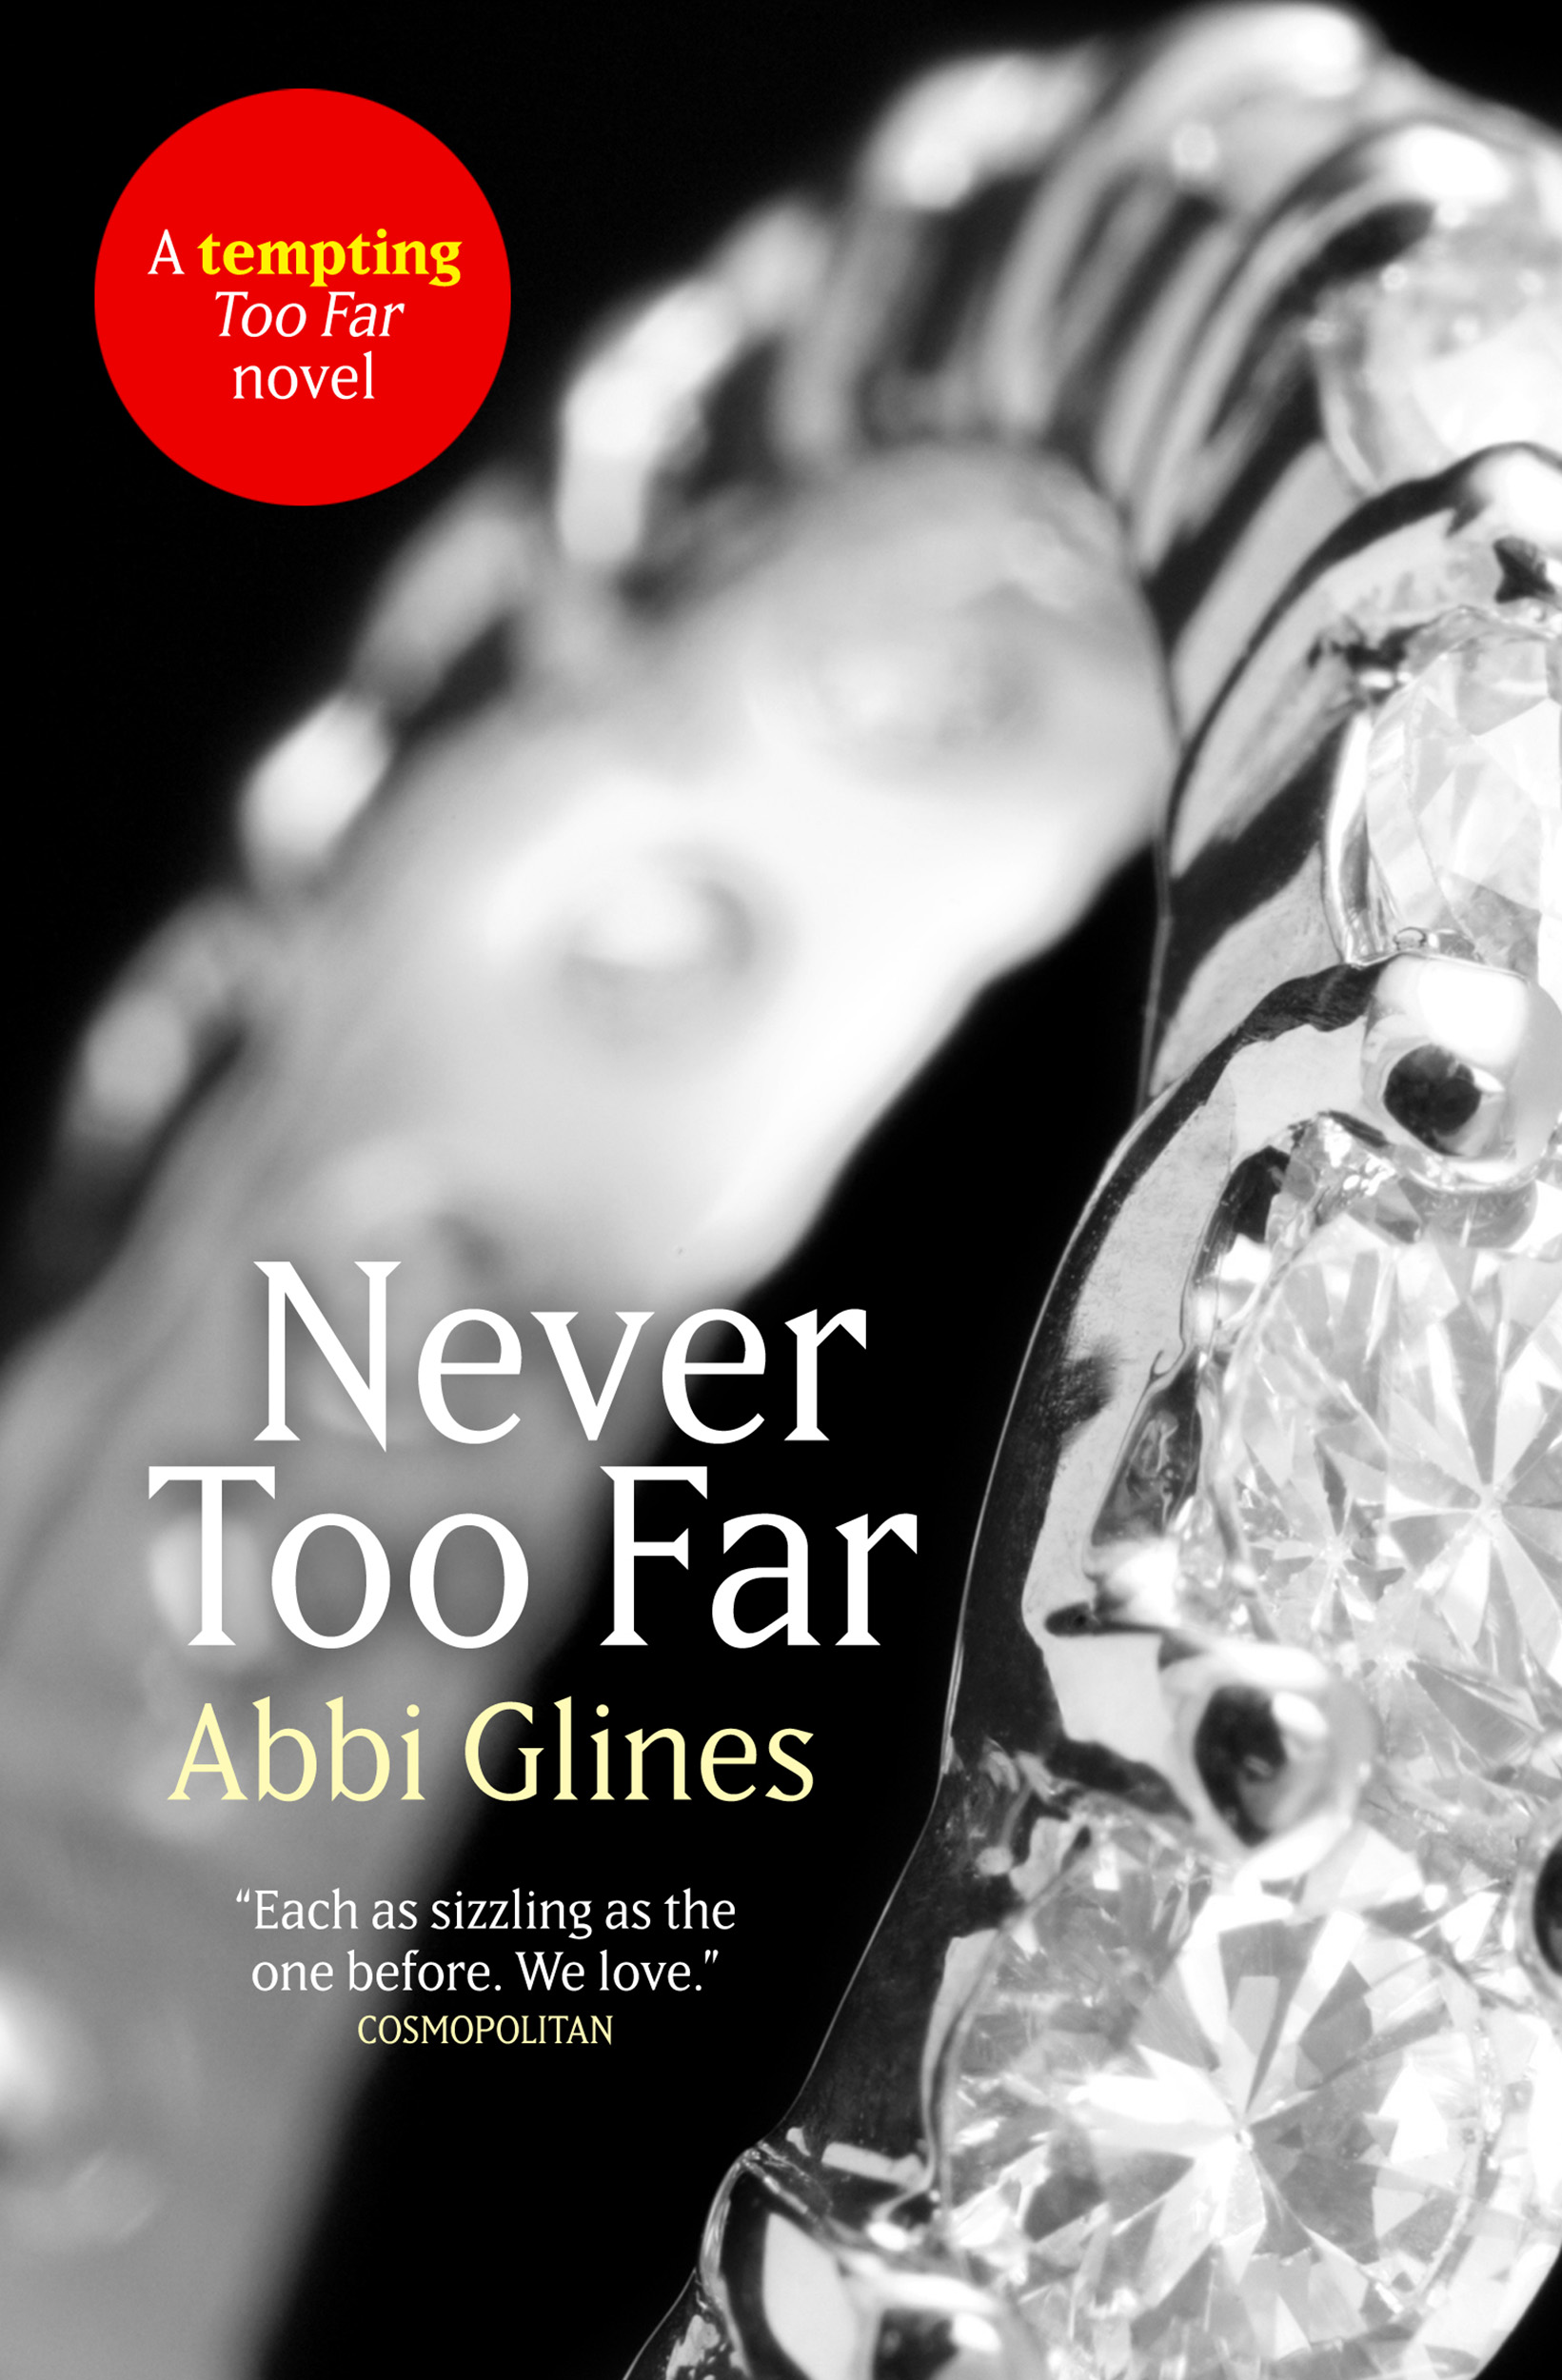 Never too far book by abbi glines official publisher page book cover image jpg never too far fandeluxe Choice Image